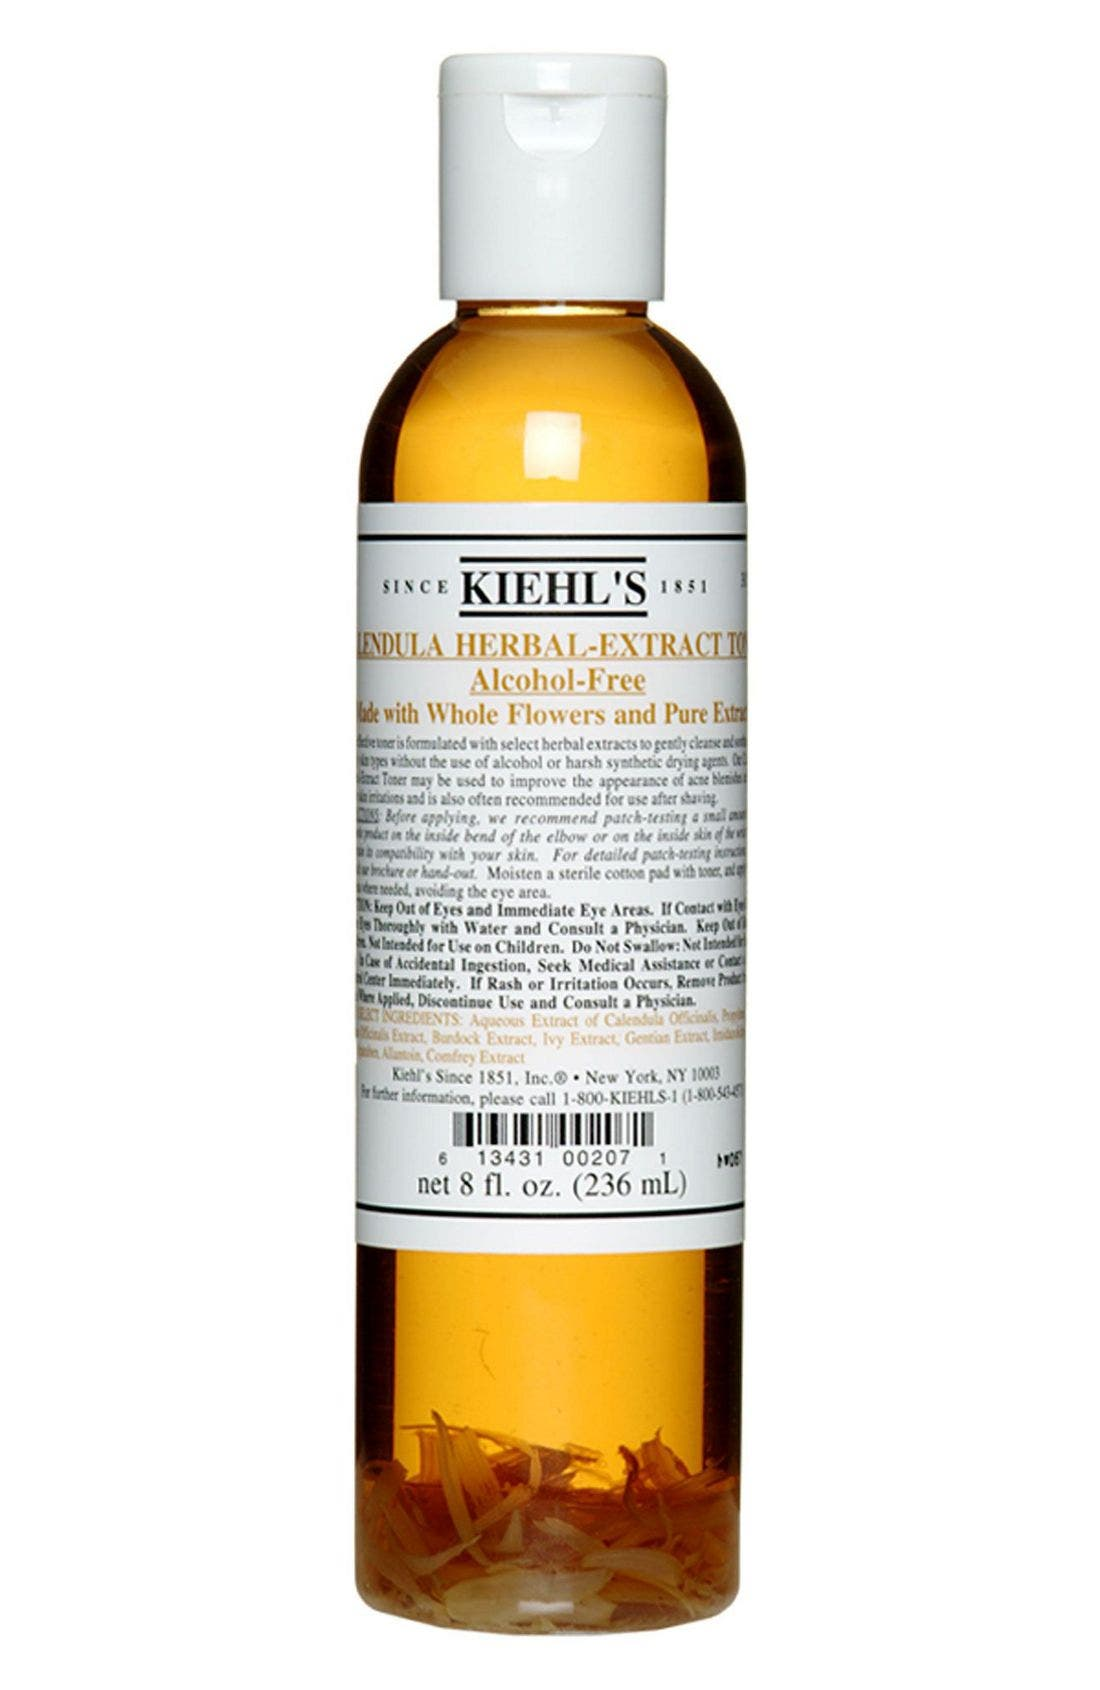 Kiehl's Since 1851 1851 Calendula Herbal Extract Alcohol-free Toner